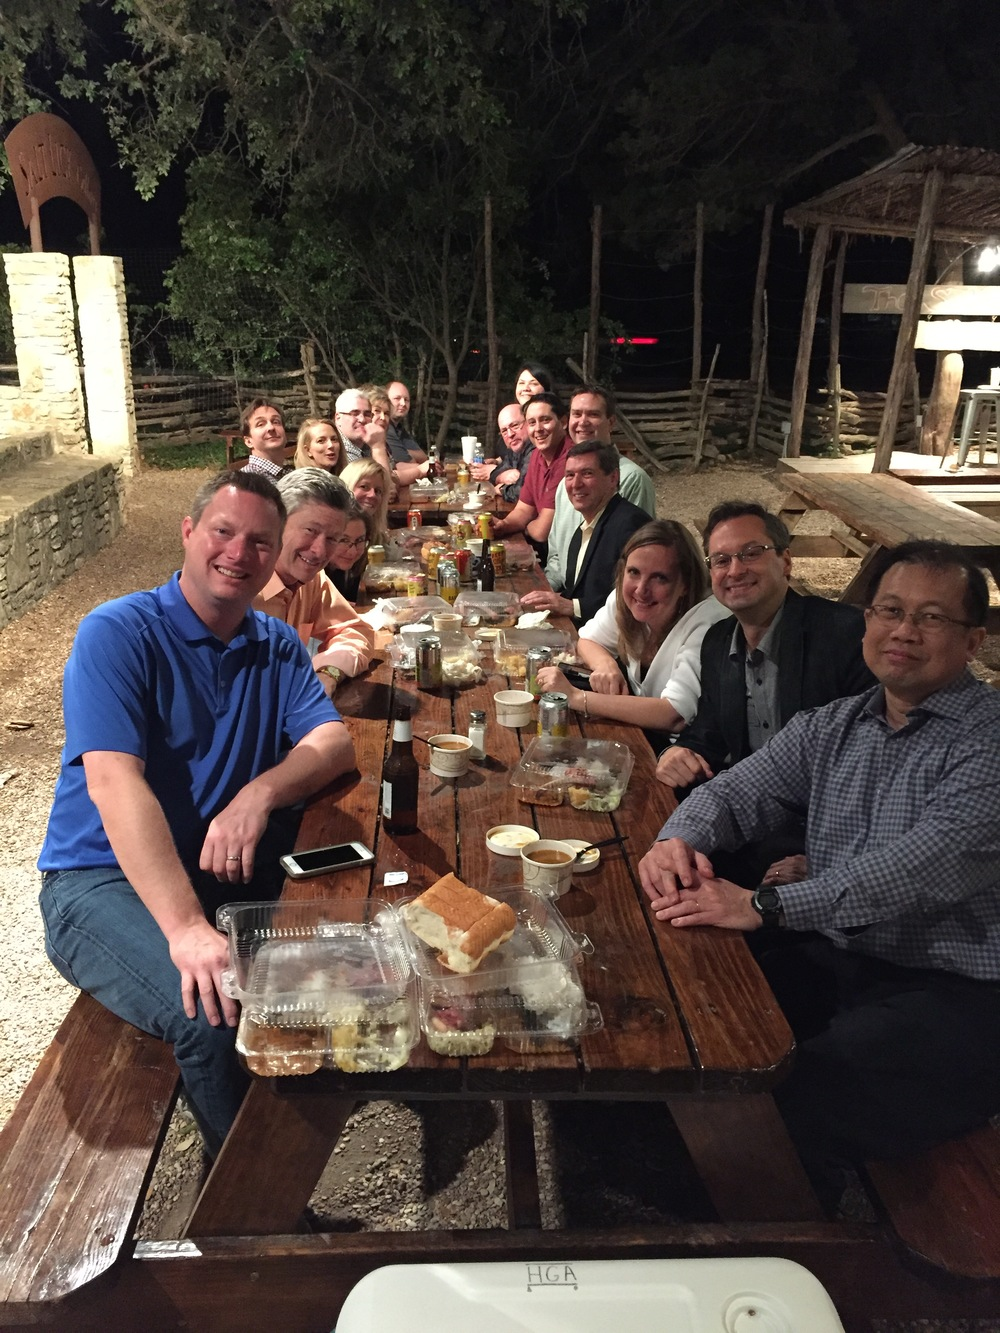 Networking over bbq at the Salt Lick